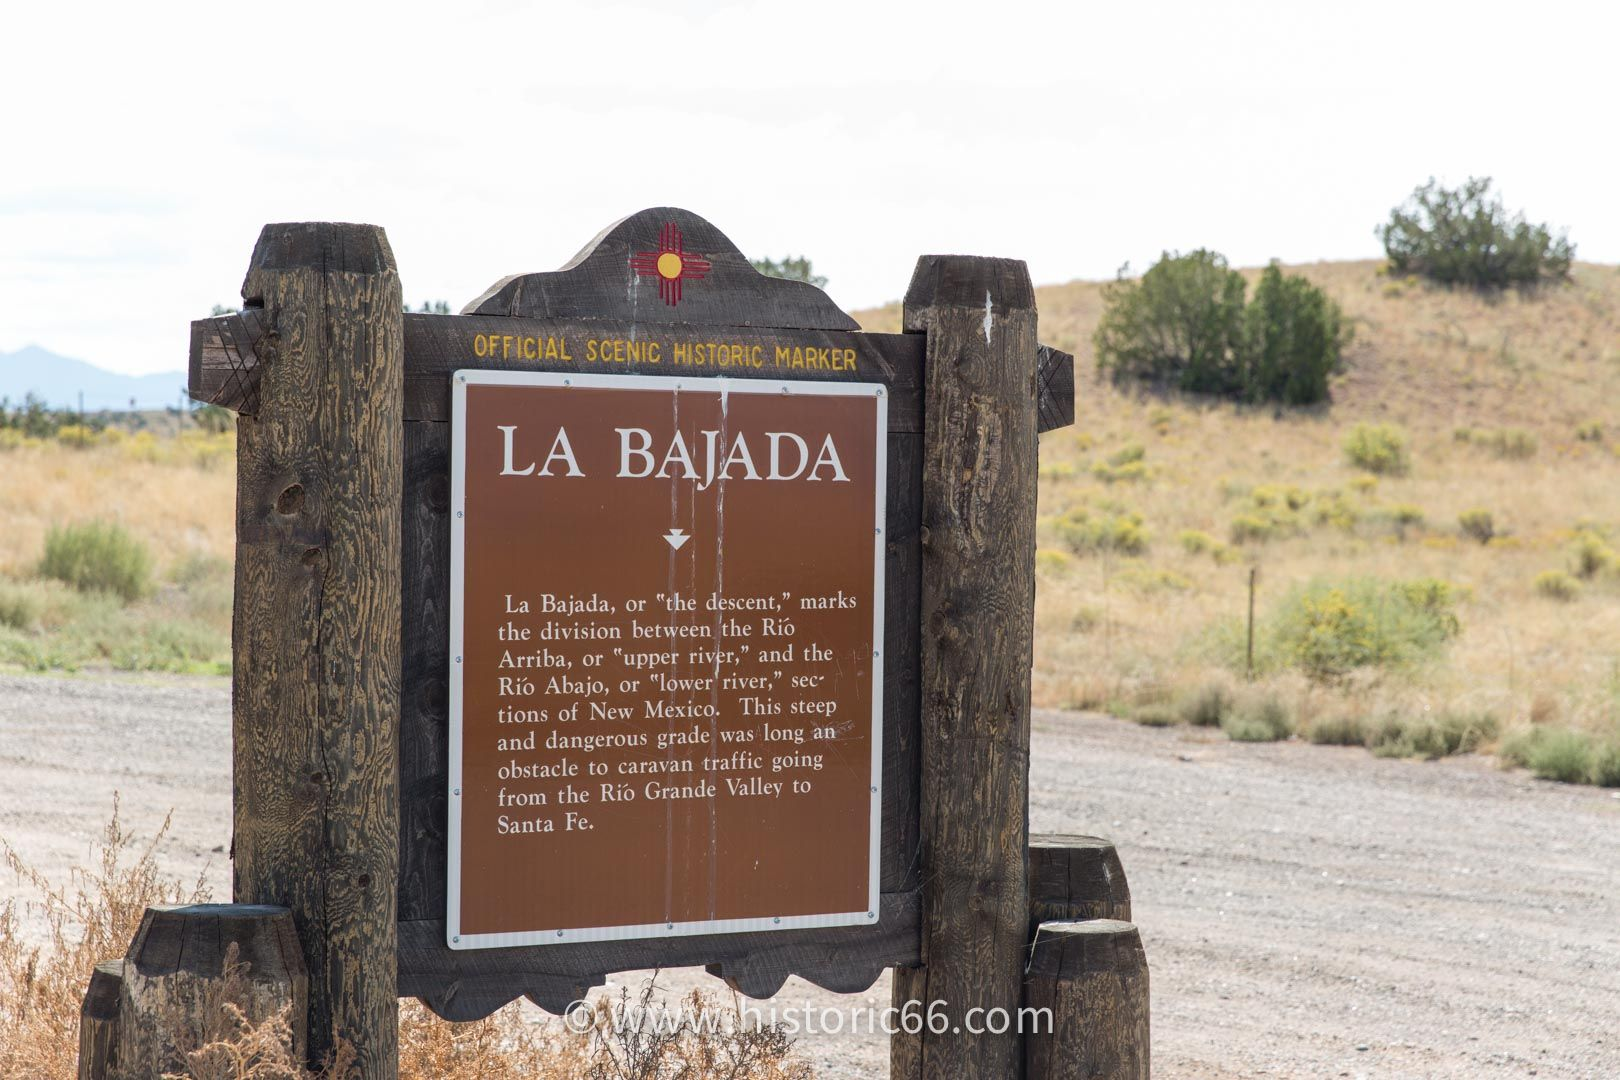 La Bajada Hill is one of the most interesting, but most difficult to traverse, segments of Route 66.